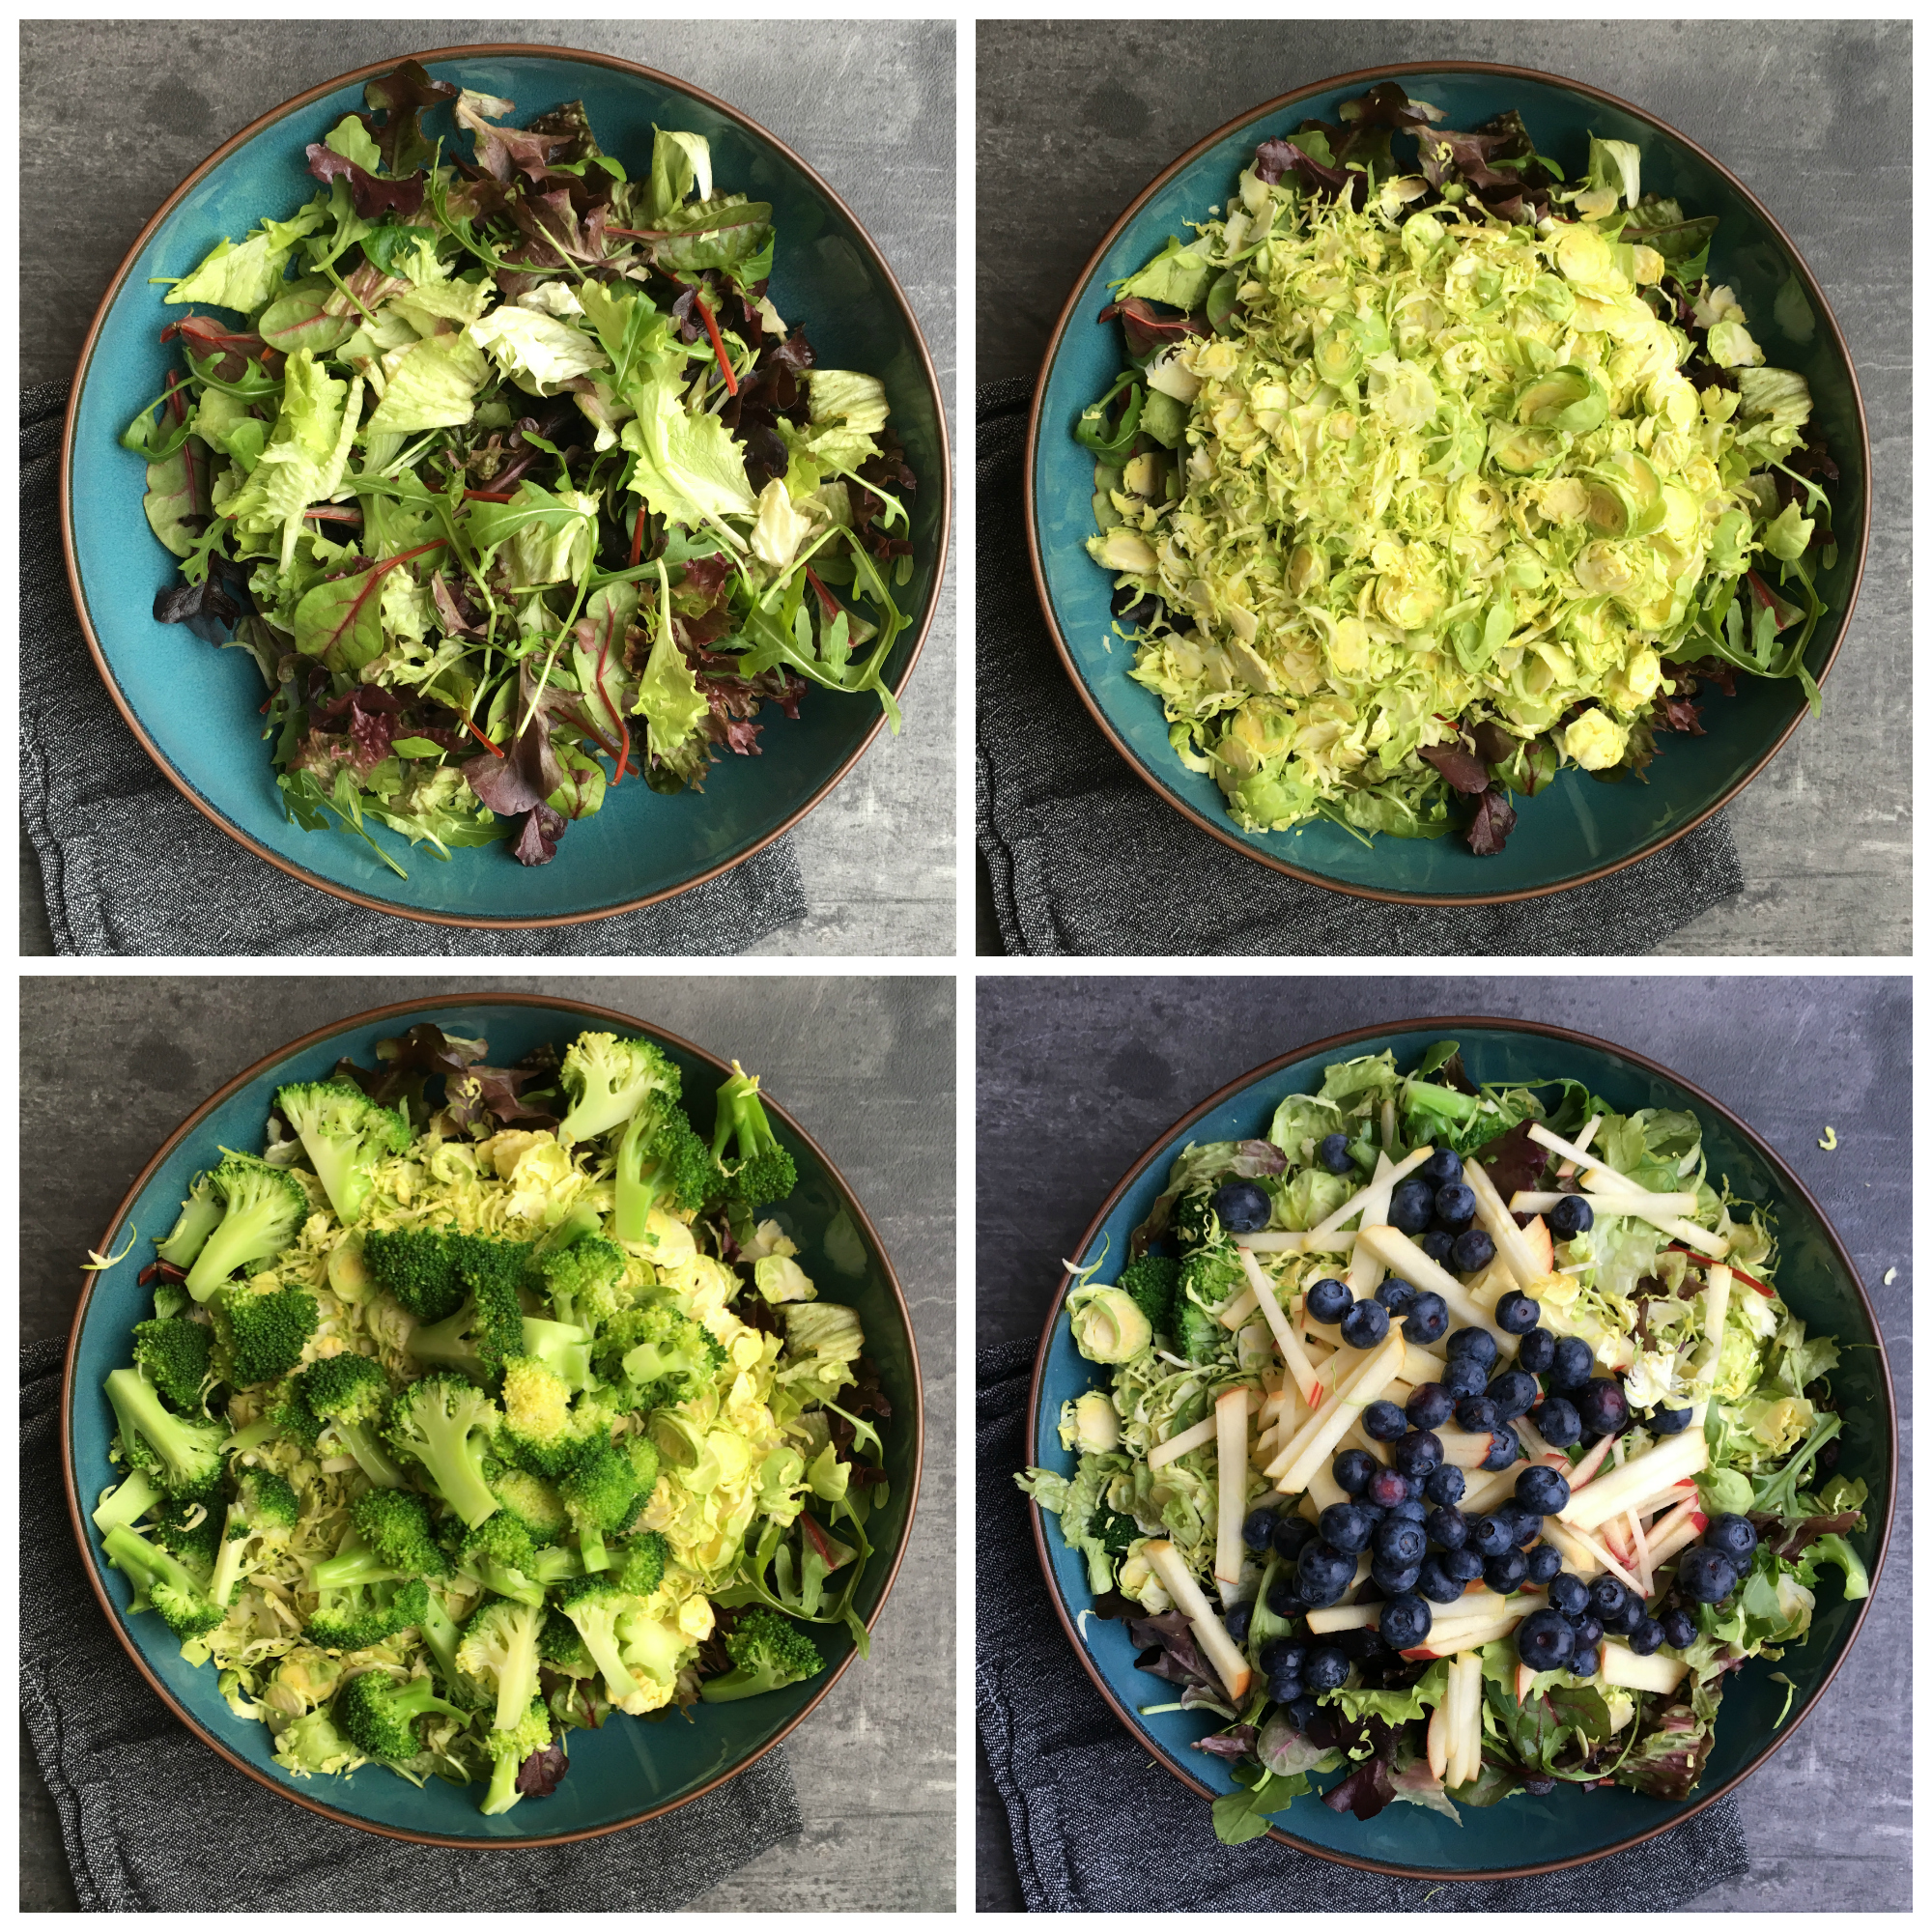 Histamine Friendly Blueberry Duck Salad with Blueberry Salad Dressing in the making